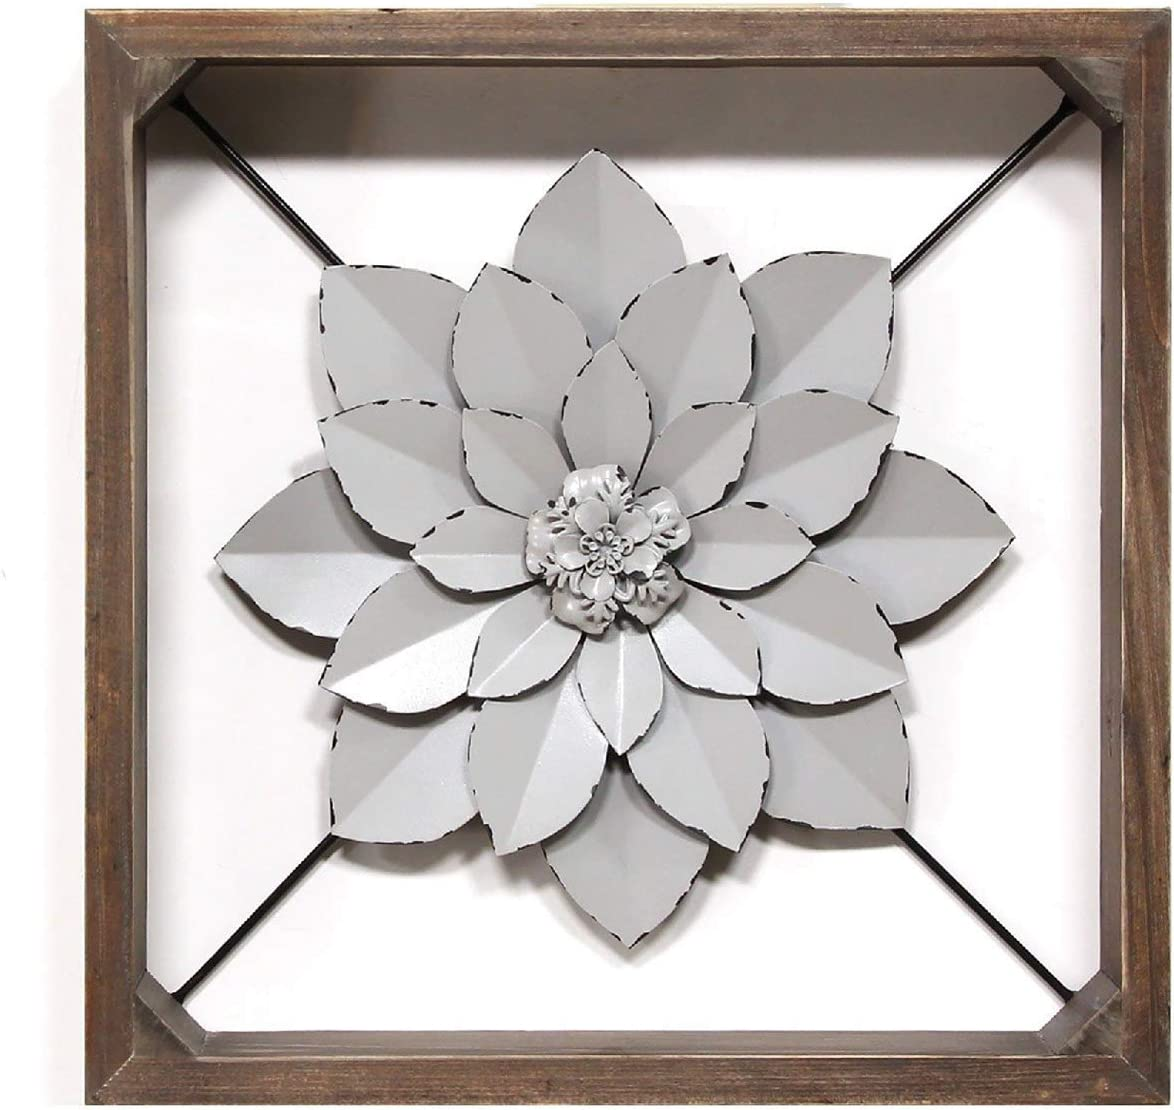 "Stratton Home Décor Stratton Home Decor Framed Metal Flower, 15.75"" W X 2.75"" D X 15.75"" H, Dark Walnut, Grey"